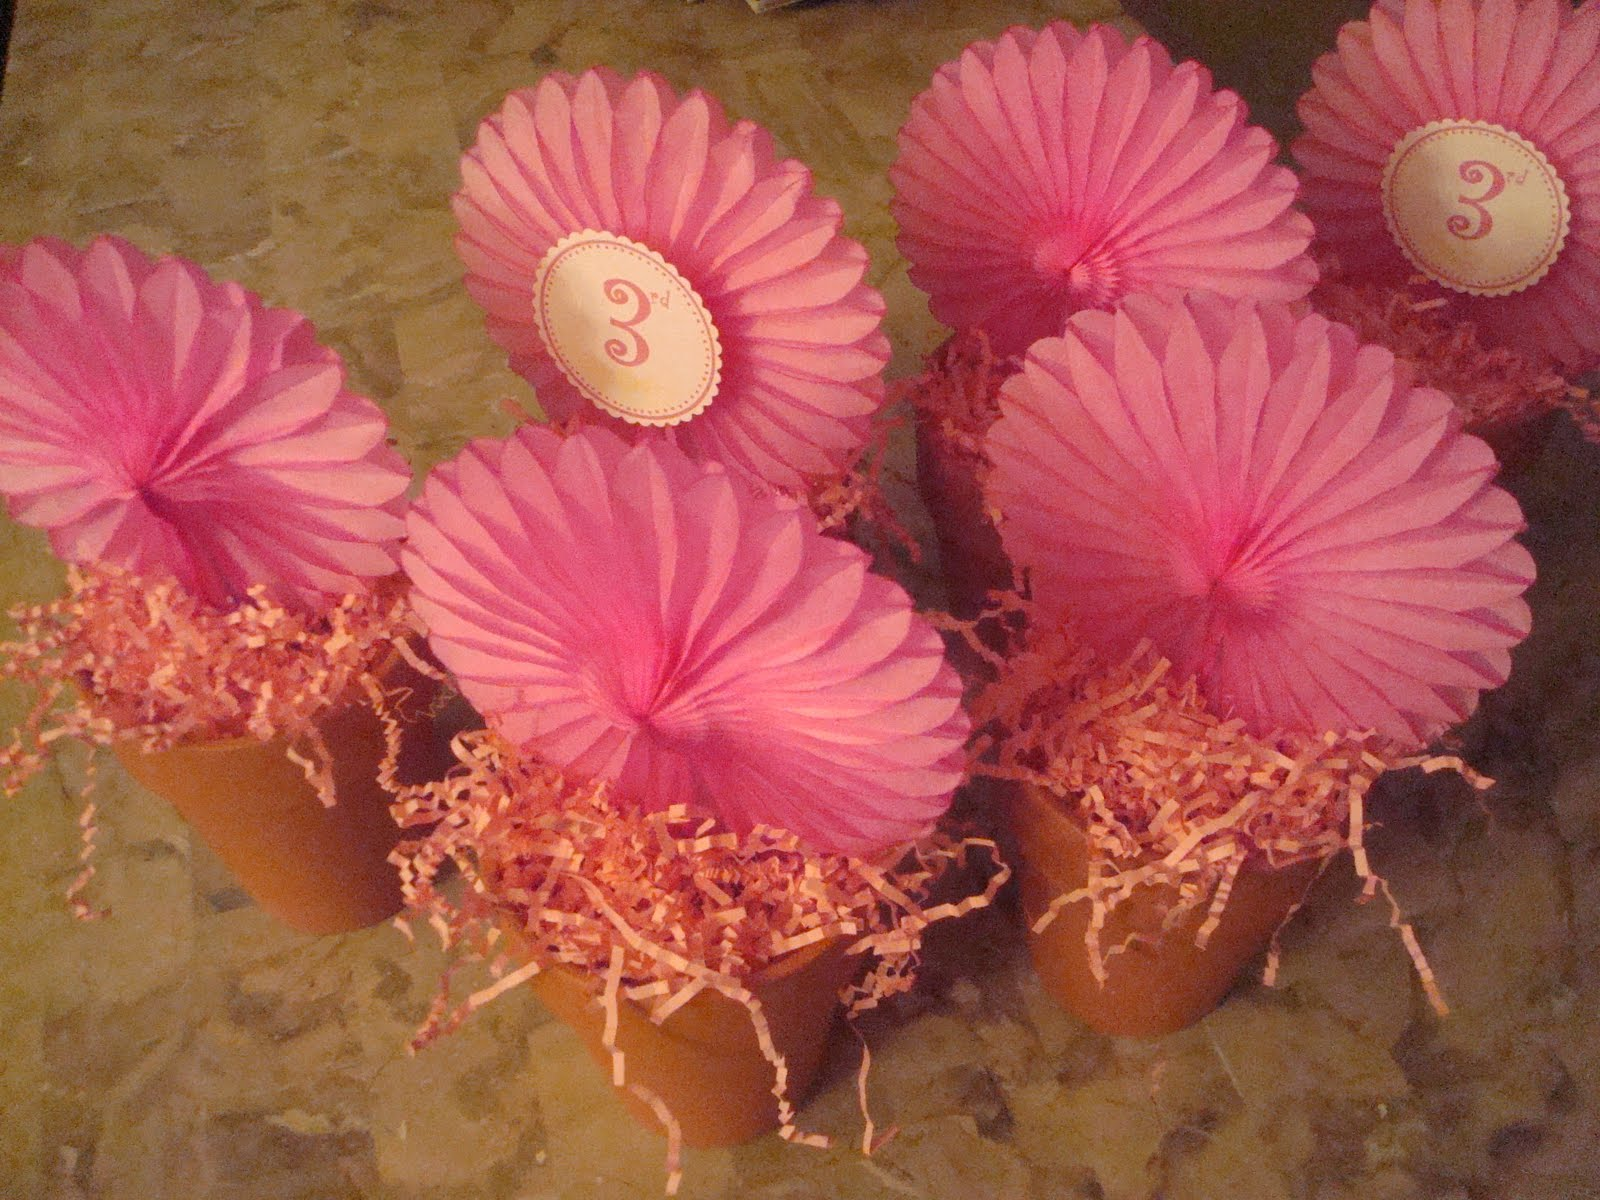 The sweetest memory garden party planning ideas for the party i always like to do a craft to keep the kids busy i had seen where you can take cupcake liners and make them into flowers on paper mightylinksfo